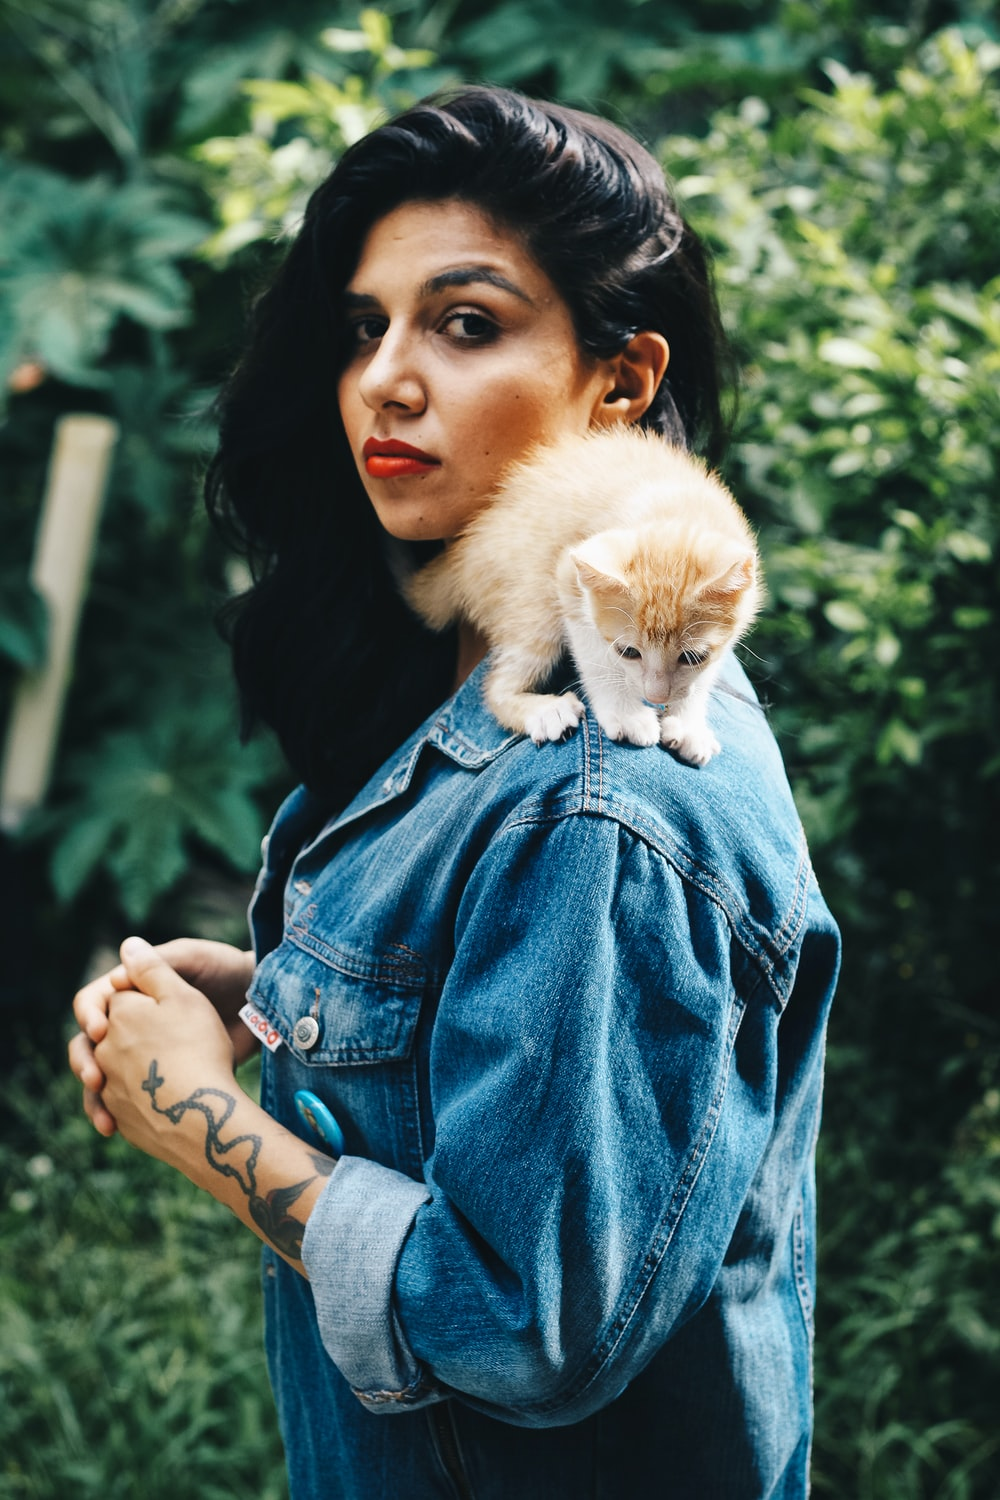 orange kitten on woman's shoulder during daytime